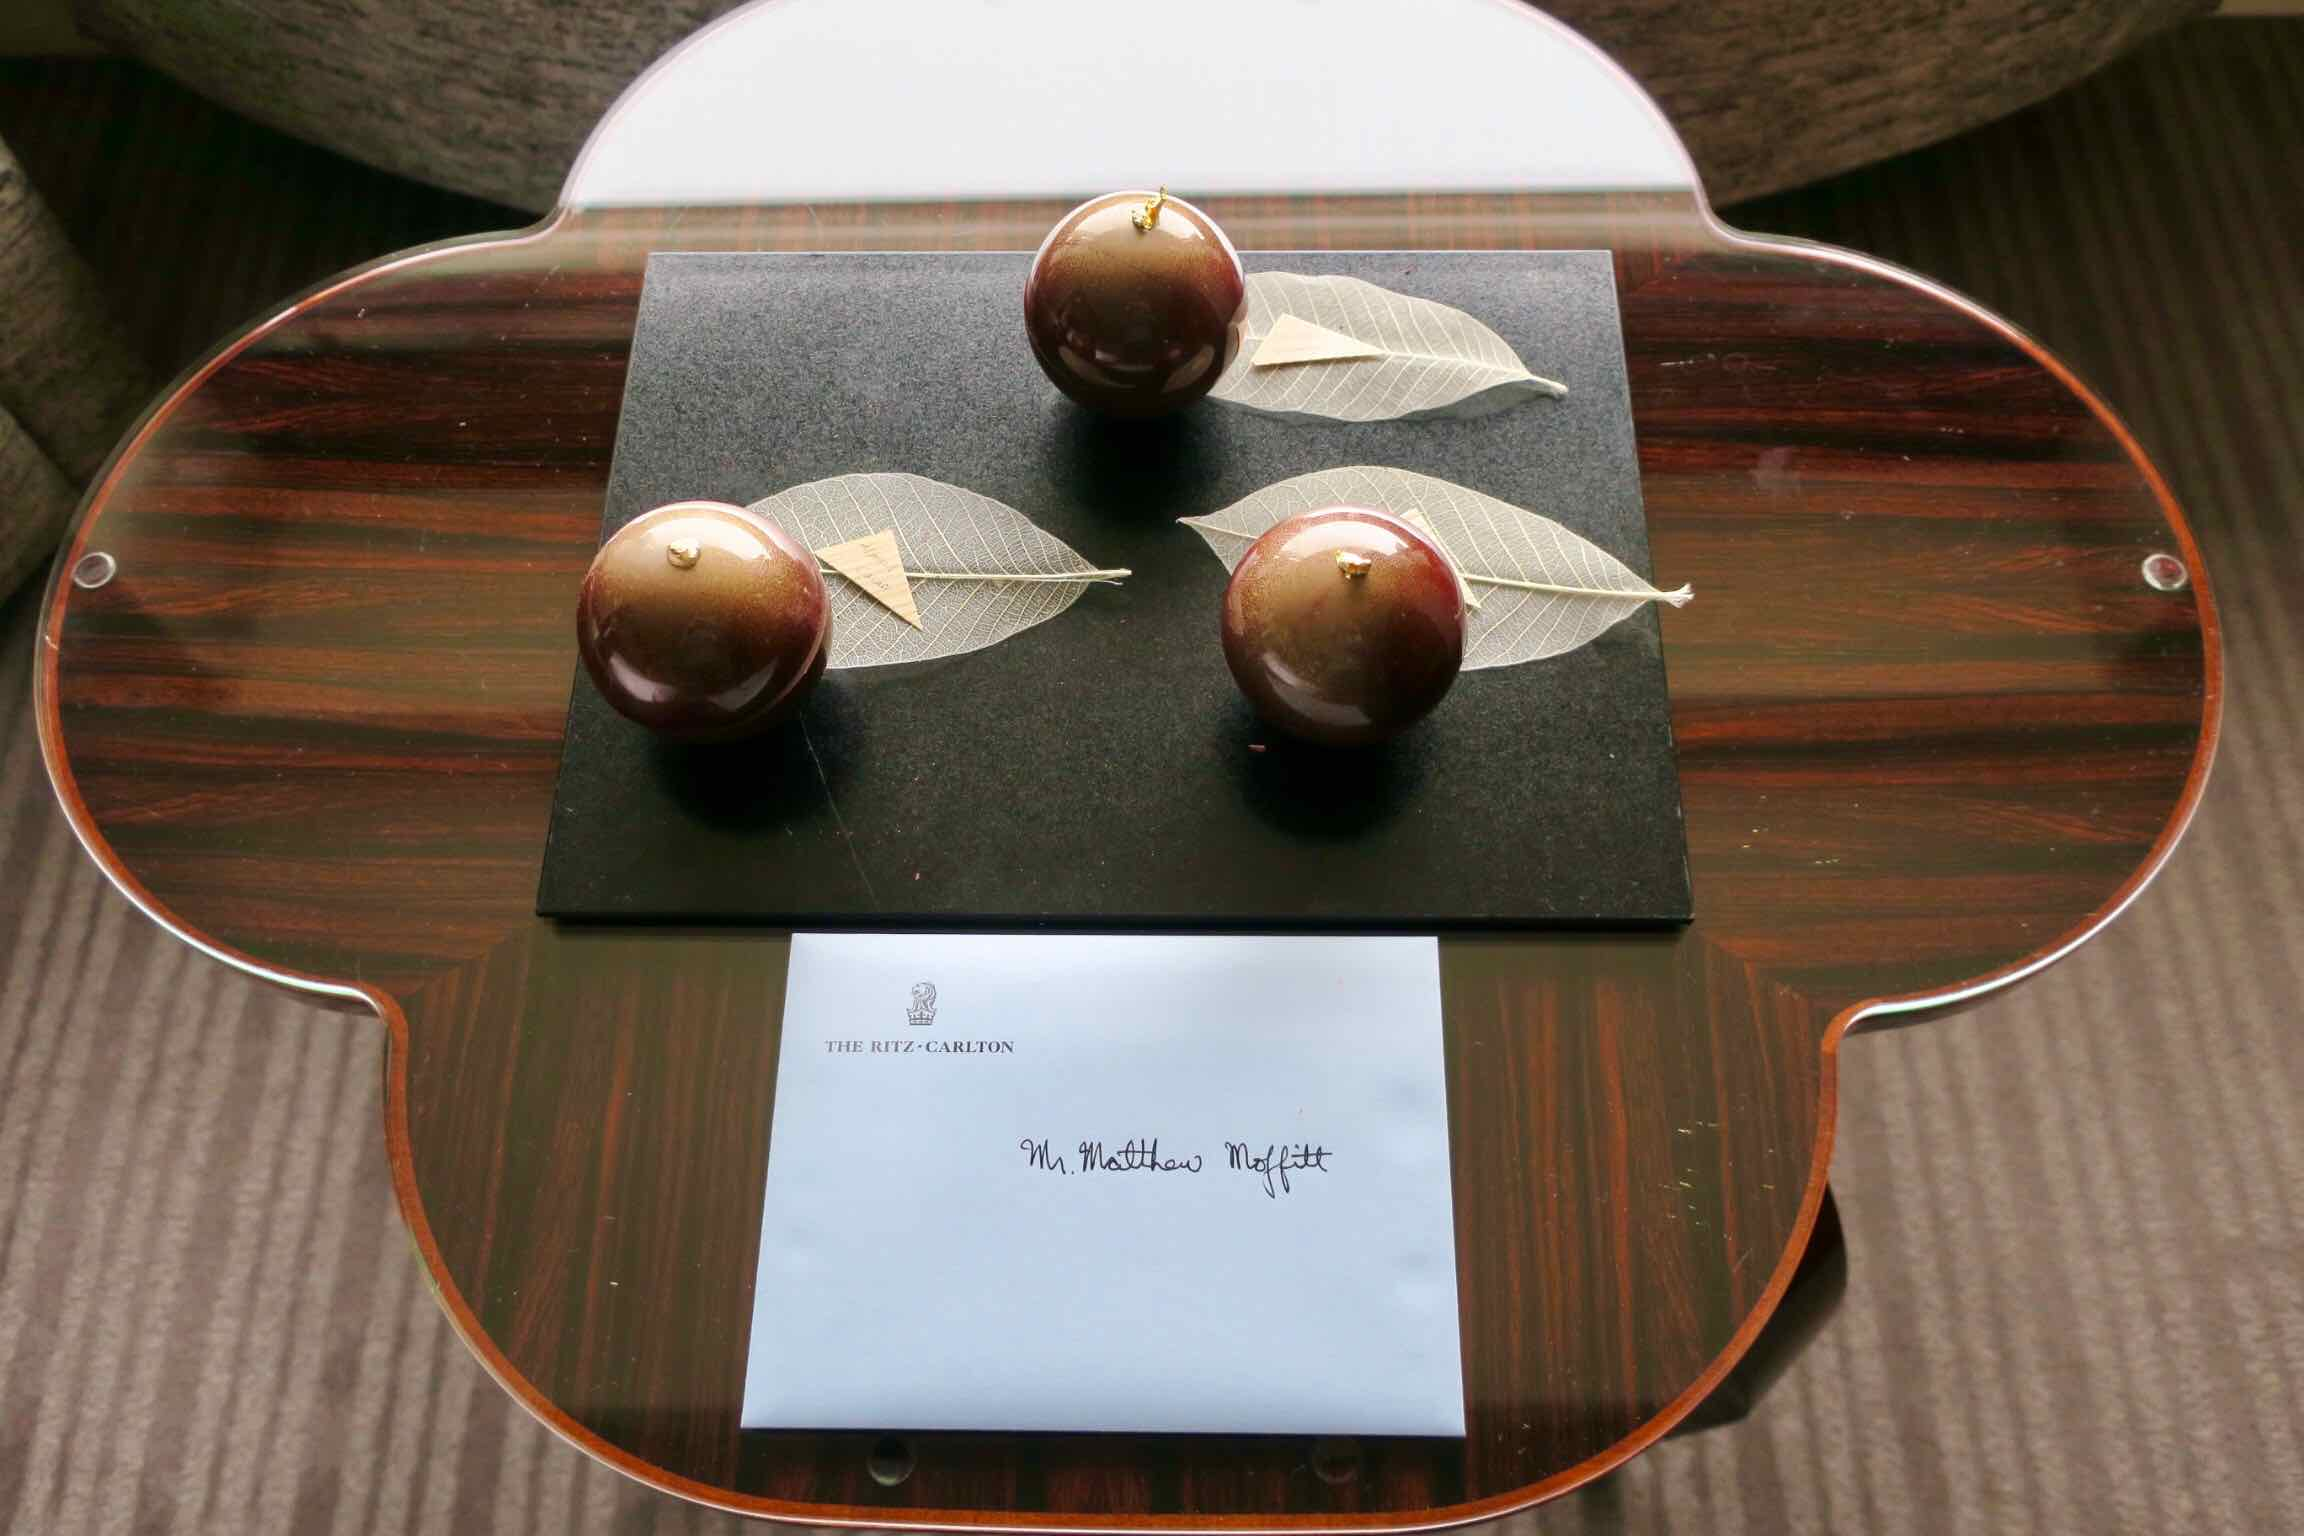 The Ritz-Carlton, Tokyo welcome note